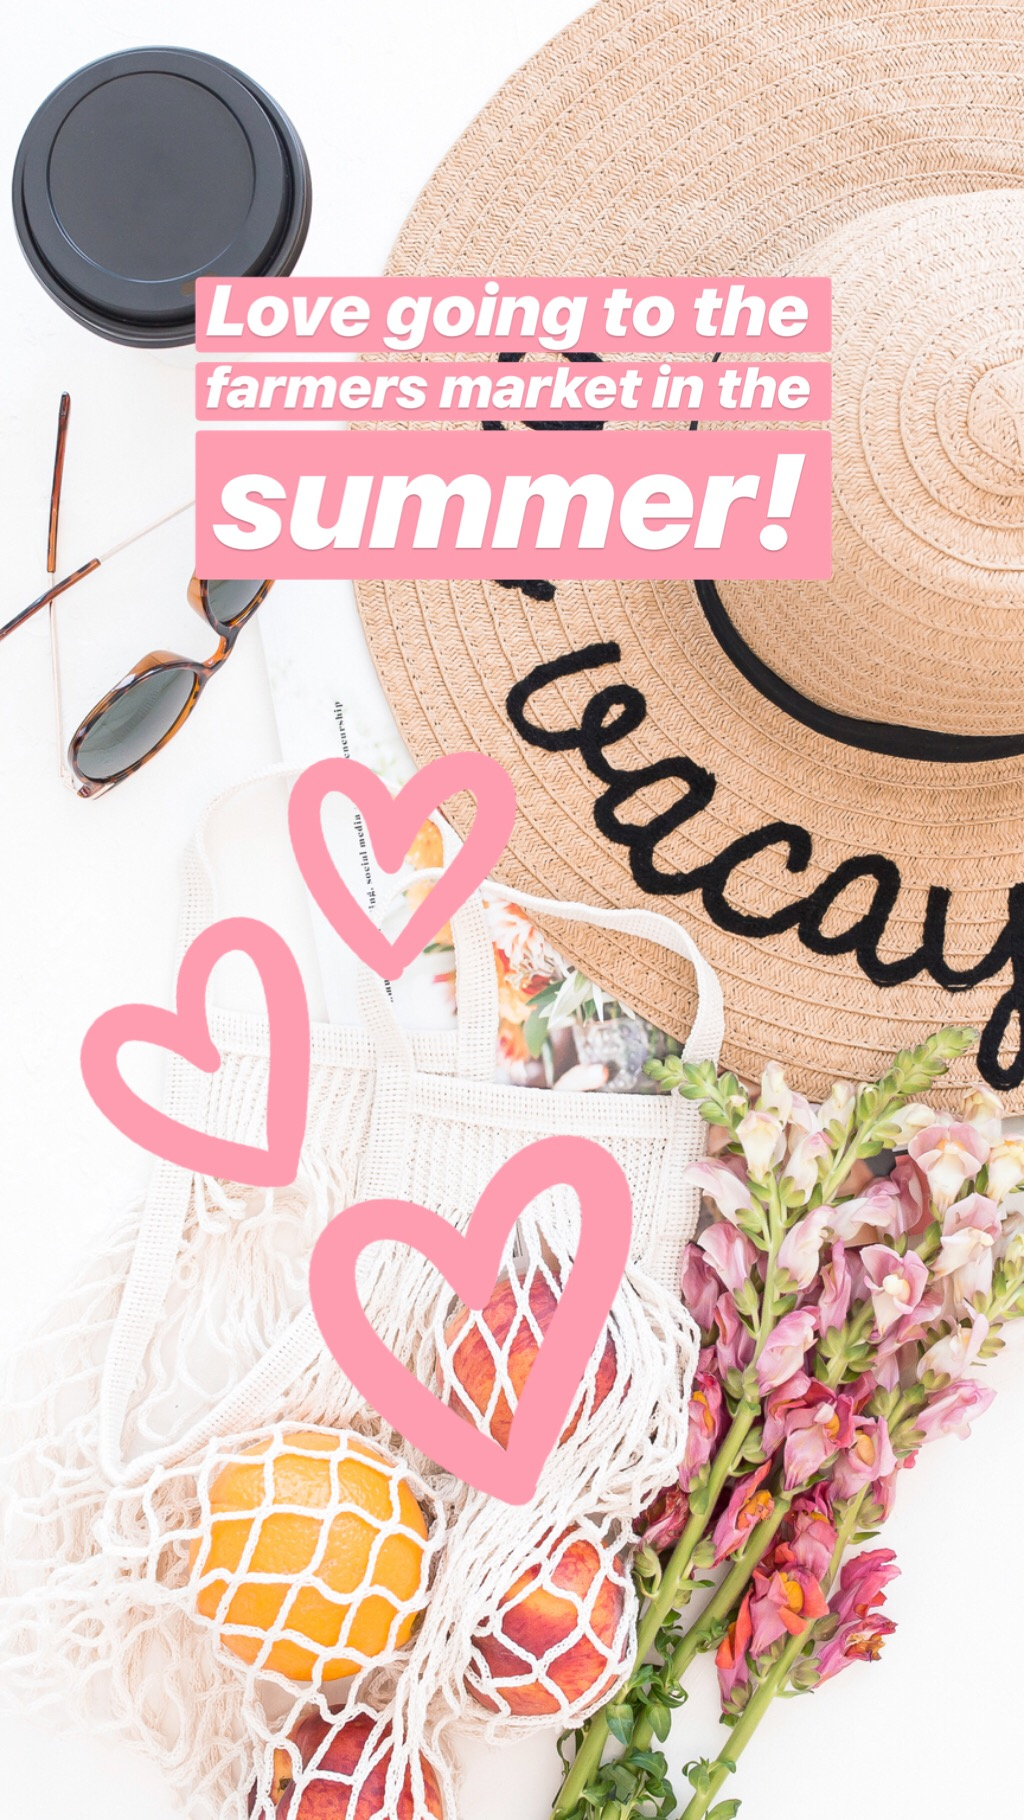 Easily create eye catching Instagram Stories graphics with a Haute Stock Membership! You'll not only get access to beautiful feminine stock photos, you'll also get access to exclusive Graphics Packs with design elements like the Instagram overlay stickers used here!